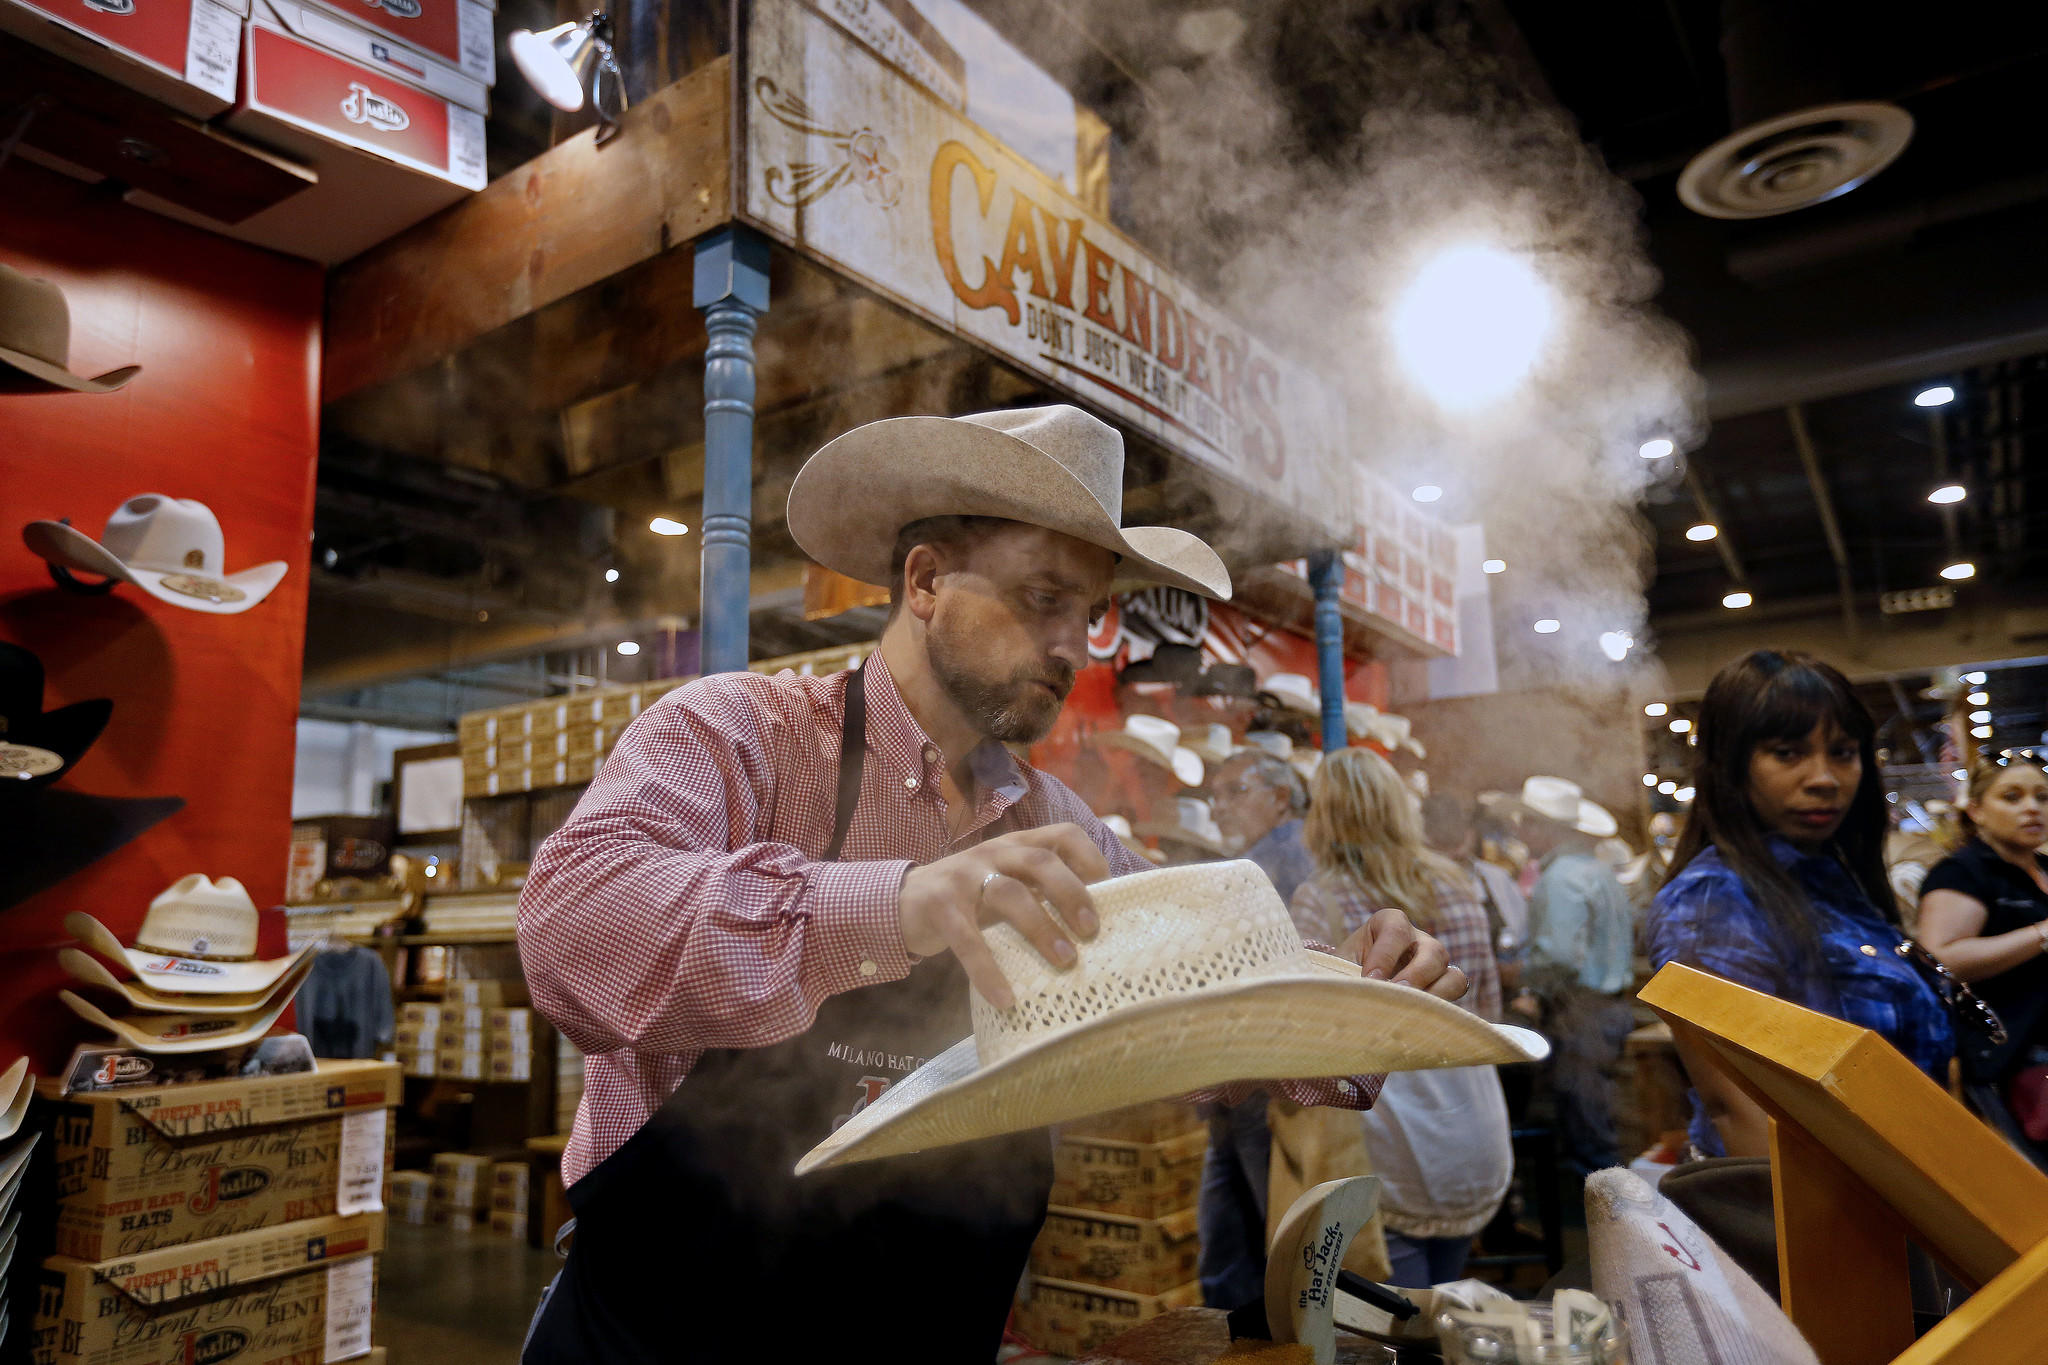 How houston has become the most diverse place in america bryan scott adjusts the shape of a cowboy hat at the houston livestock show and rodeo at nrg park in houston aiddatafo Gallery